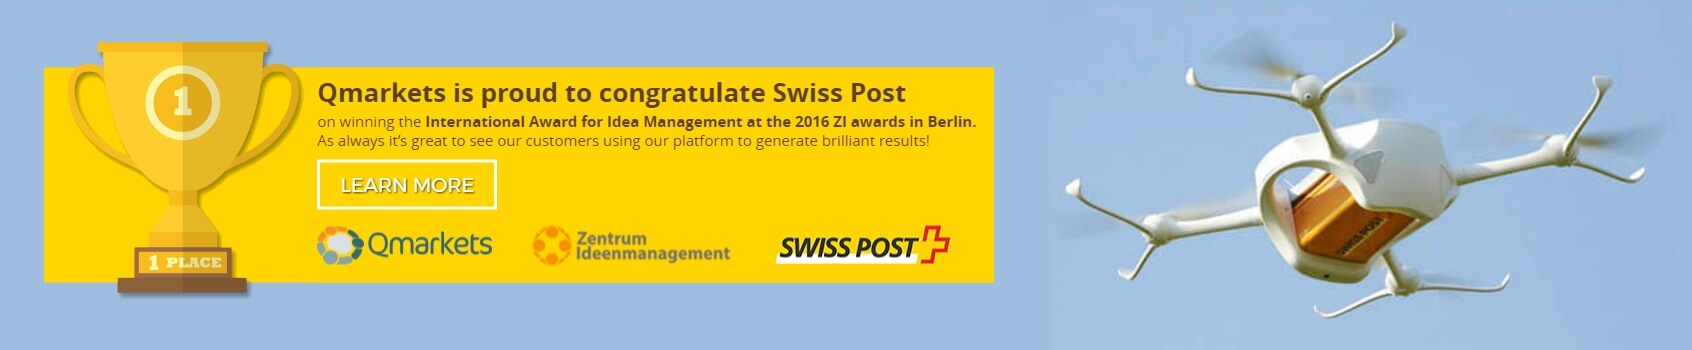 swiss_post_blog_drone_banner